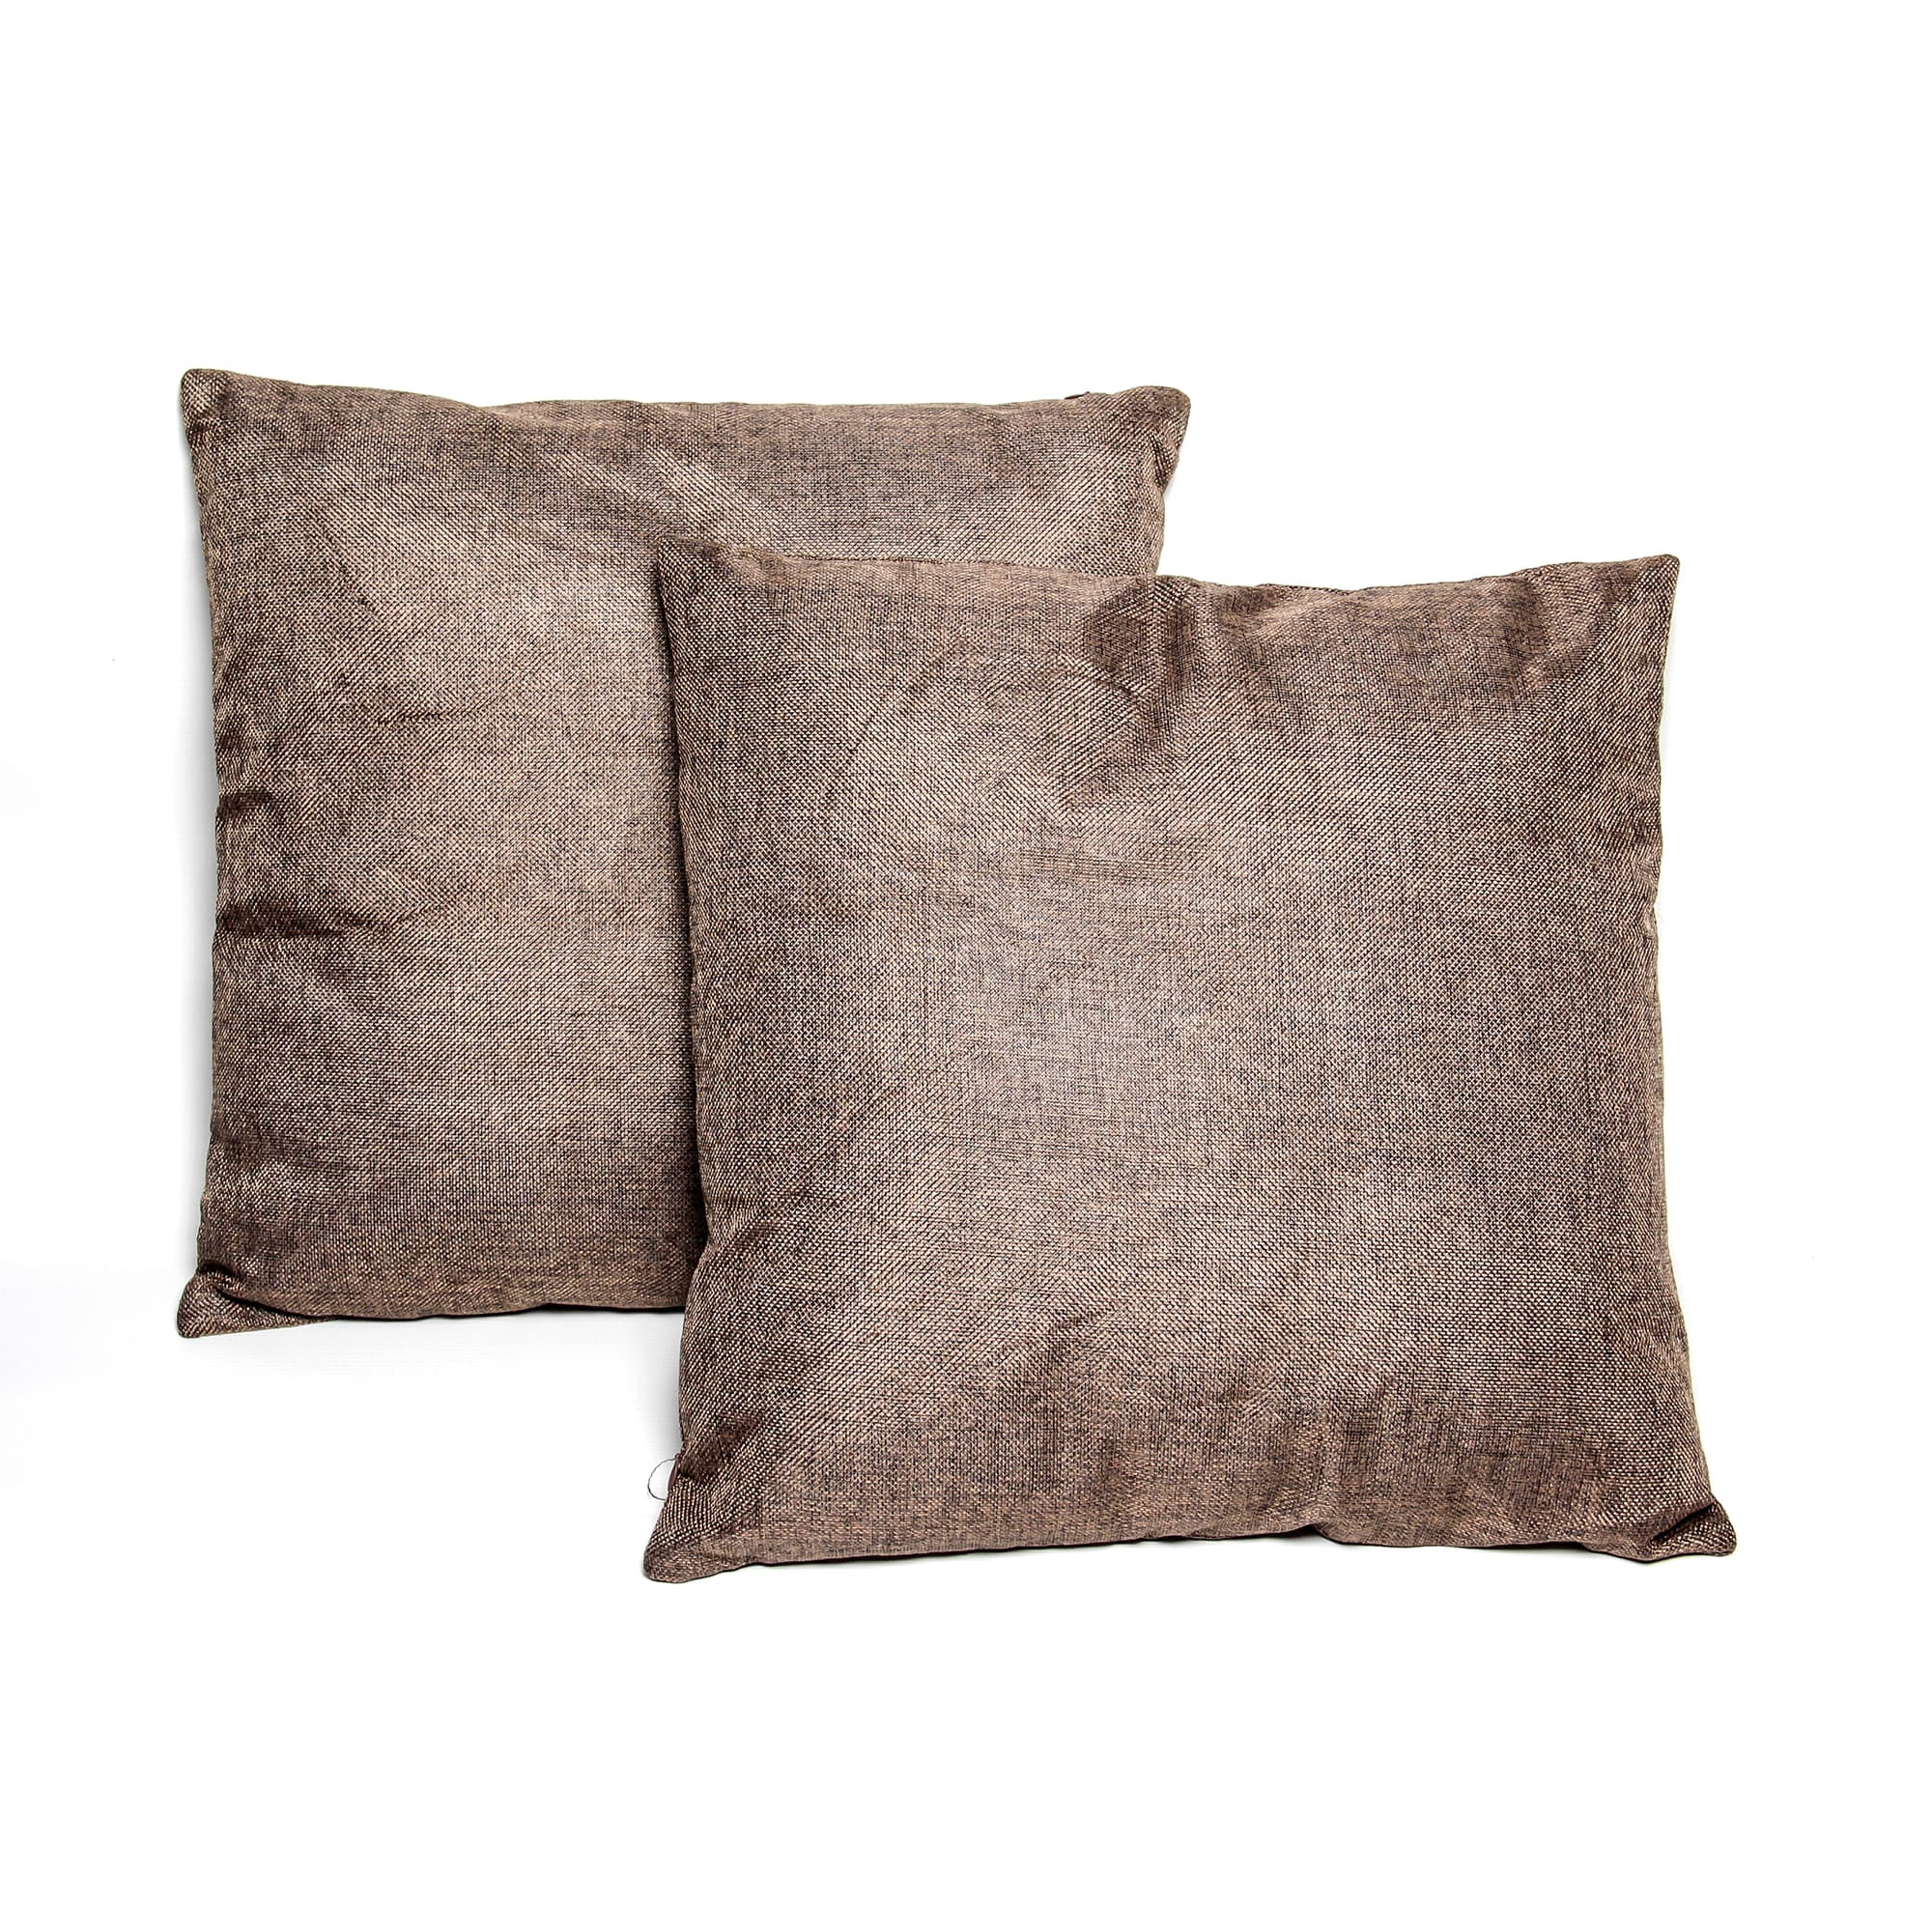 TrendyHomeGoods Dark Brown 16-inch Throw Pillows (Set of 2) by Overstock